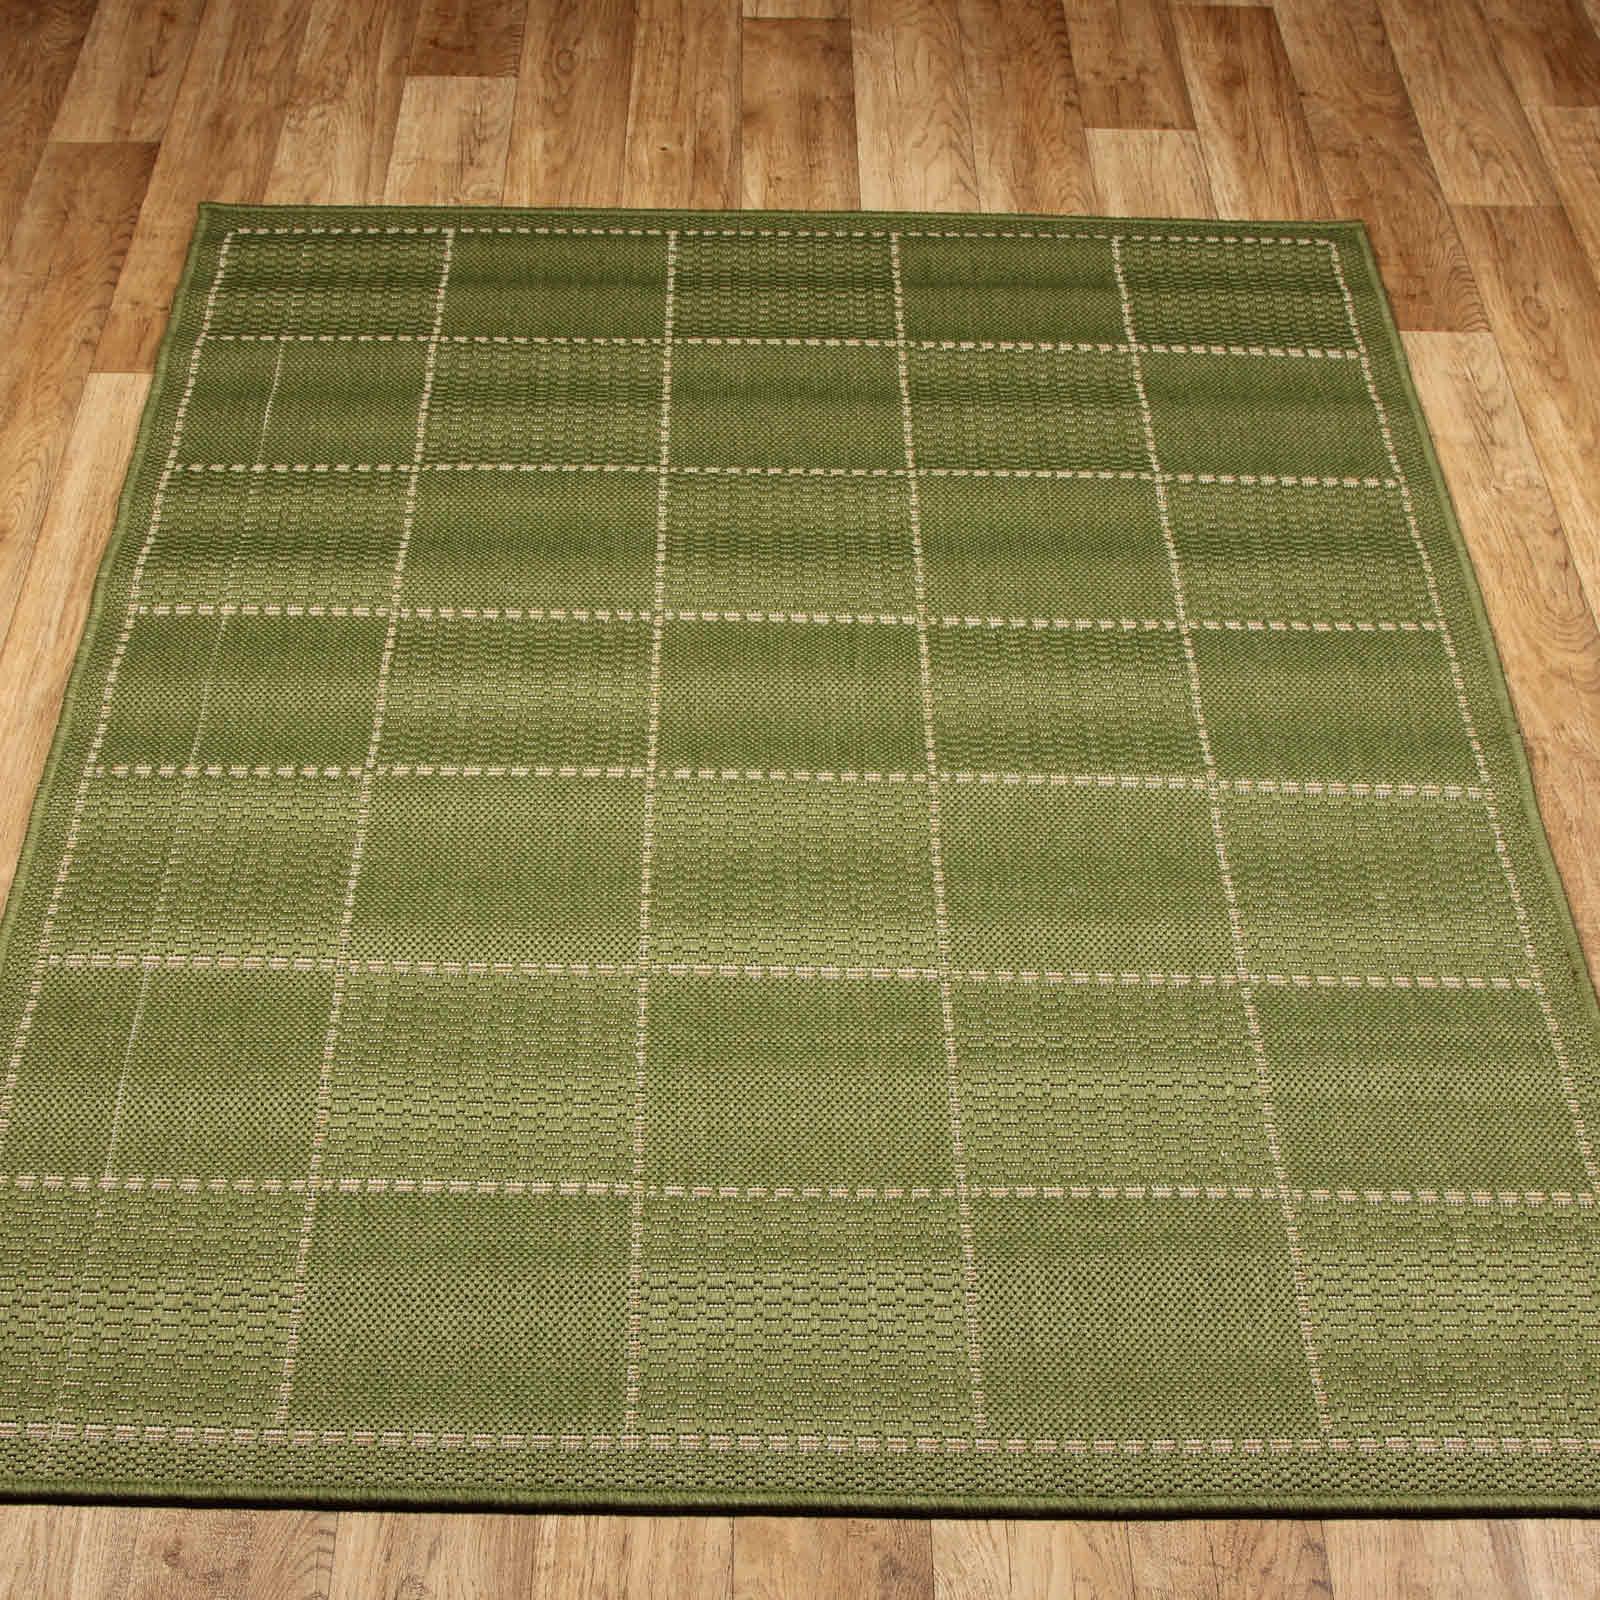 Super Sisalo Anti Slip Kitchen Rugs In Green Uk Delivery